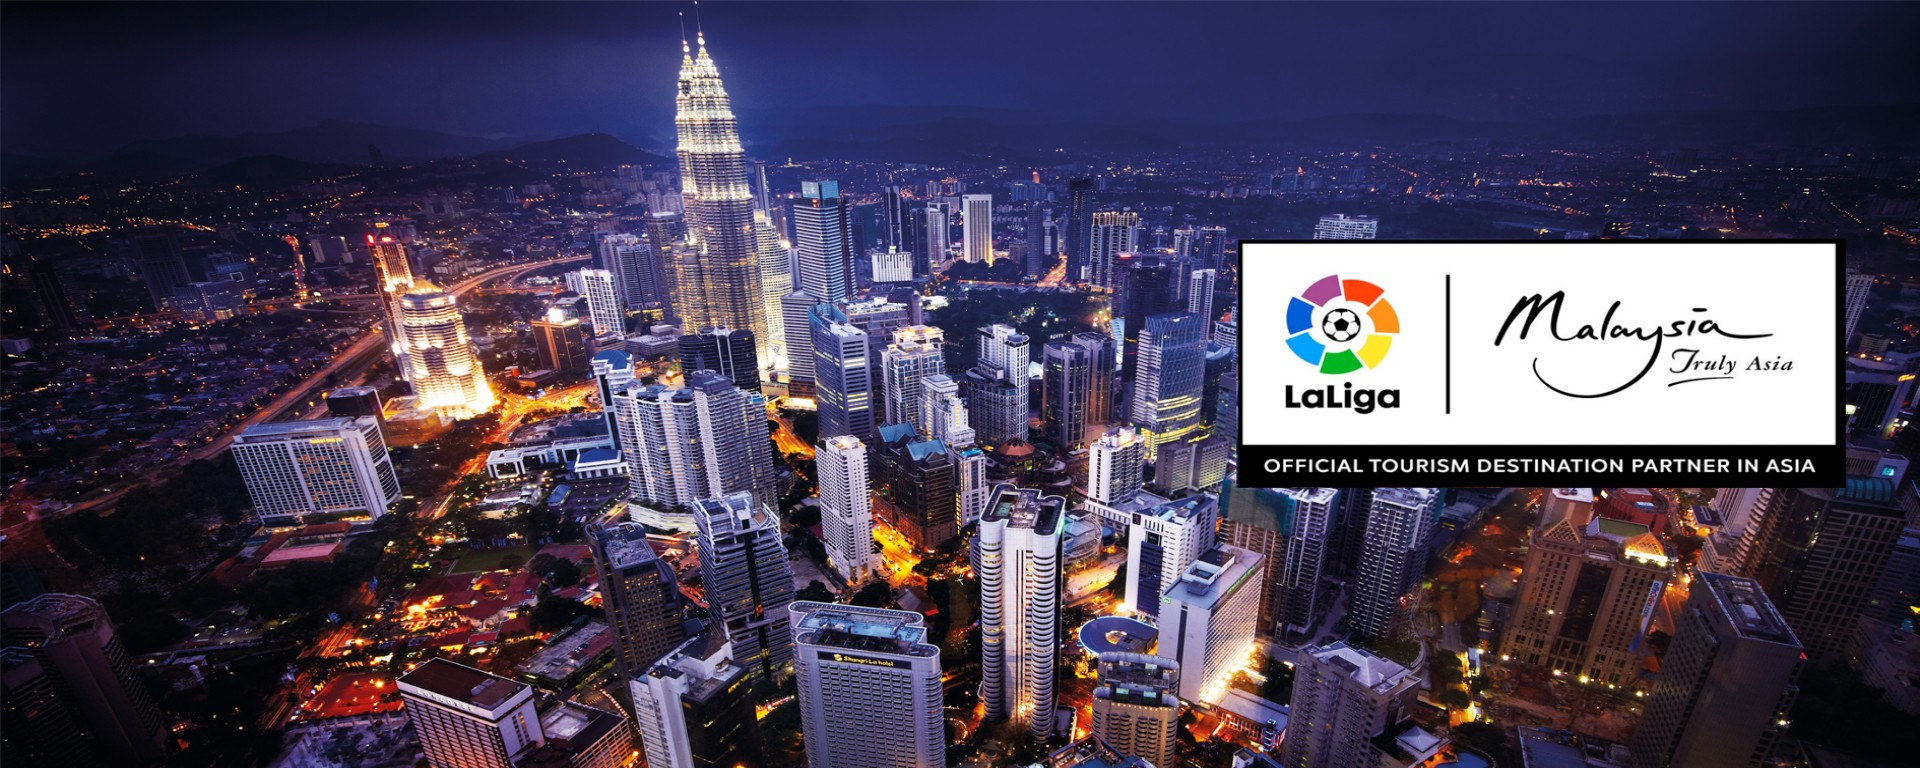 <div class='action'><a href='http://www.tourism.gov.my/media/view/tourism-malaysia-is-la-liga-s-destination-partner-for-asia' class='btn btn-danger btn-lg'>Learn More</a></div>